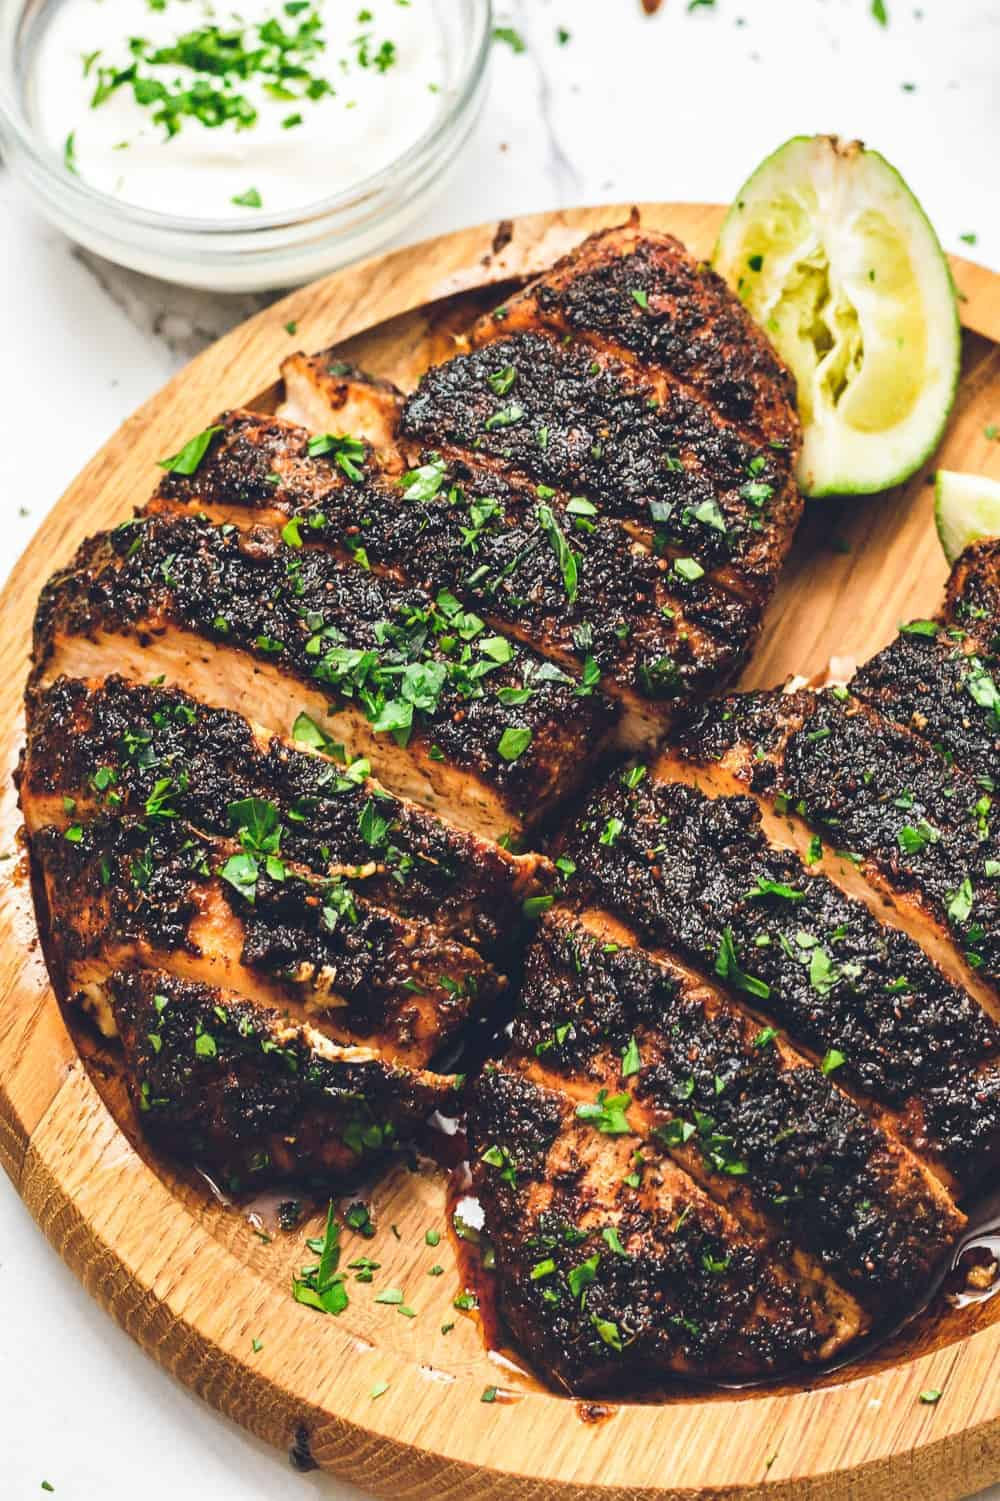 Blackened Chicken Recipe - Easy Chicken Recipes (HOW TO VIDEO)